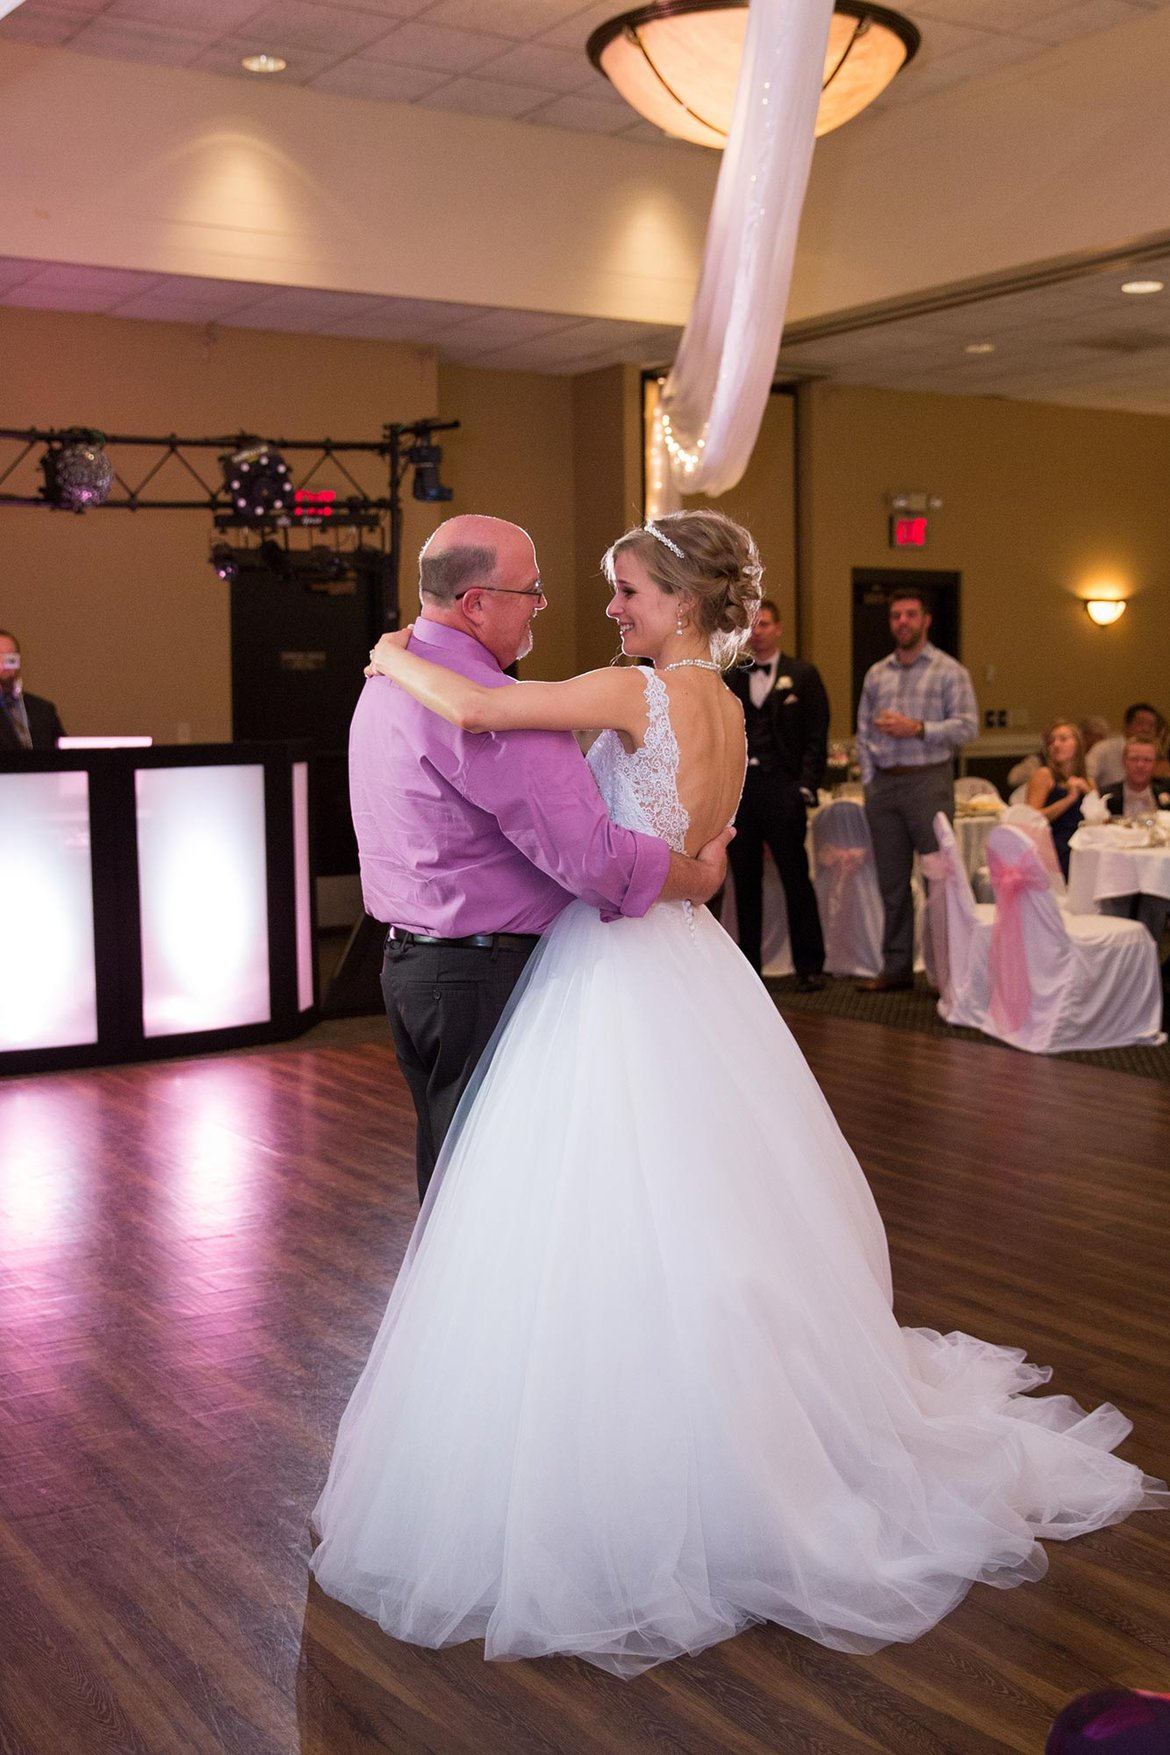 bride shares wedding dance with organ donor